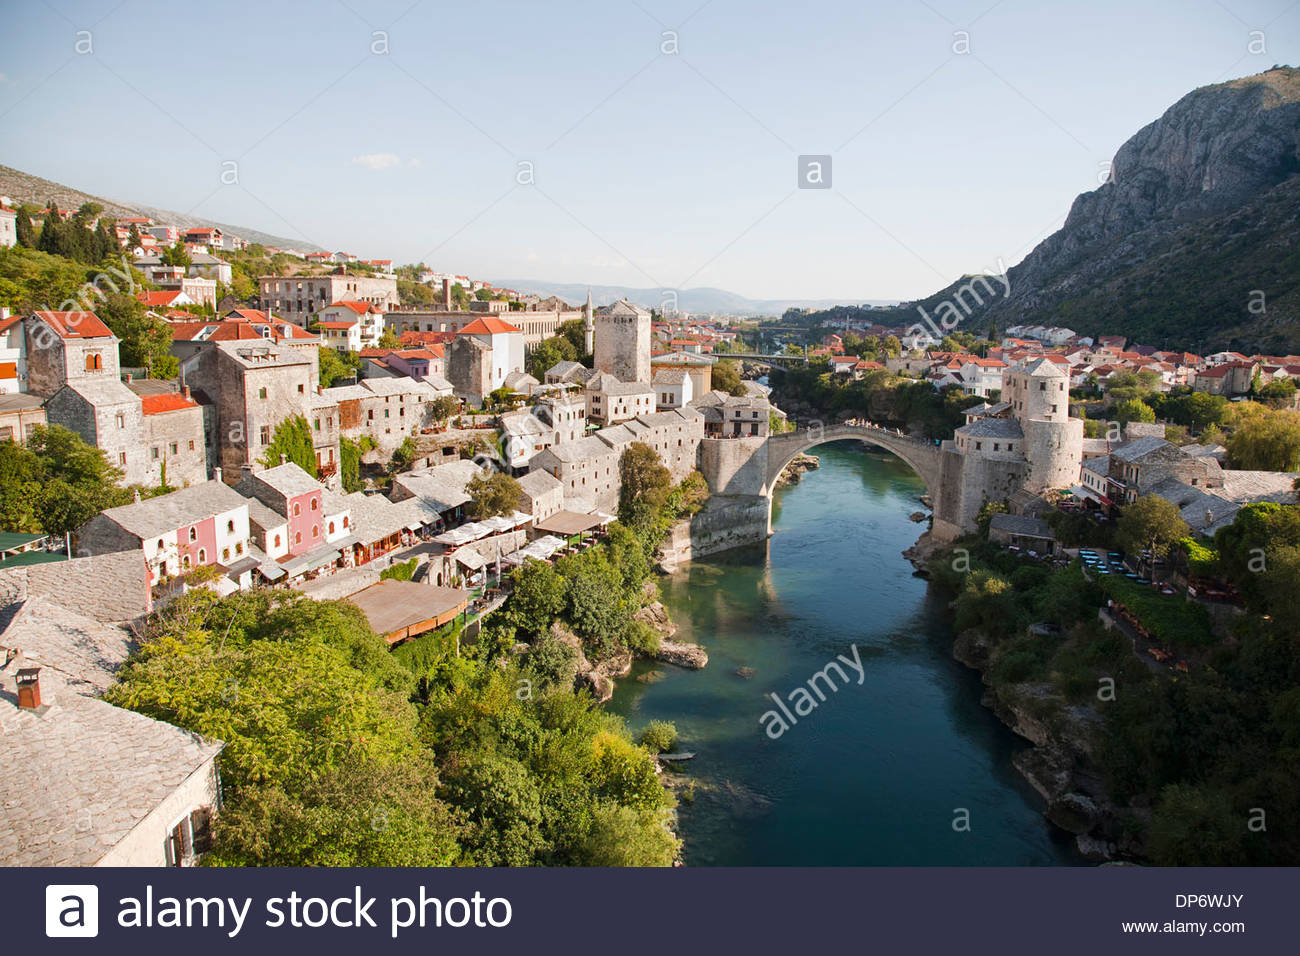 the old bridge,mostar,bosnia and herzegovina,europe - Stock Image